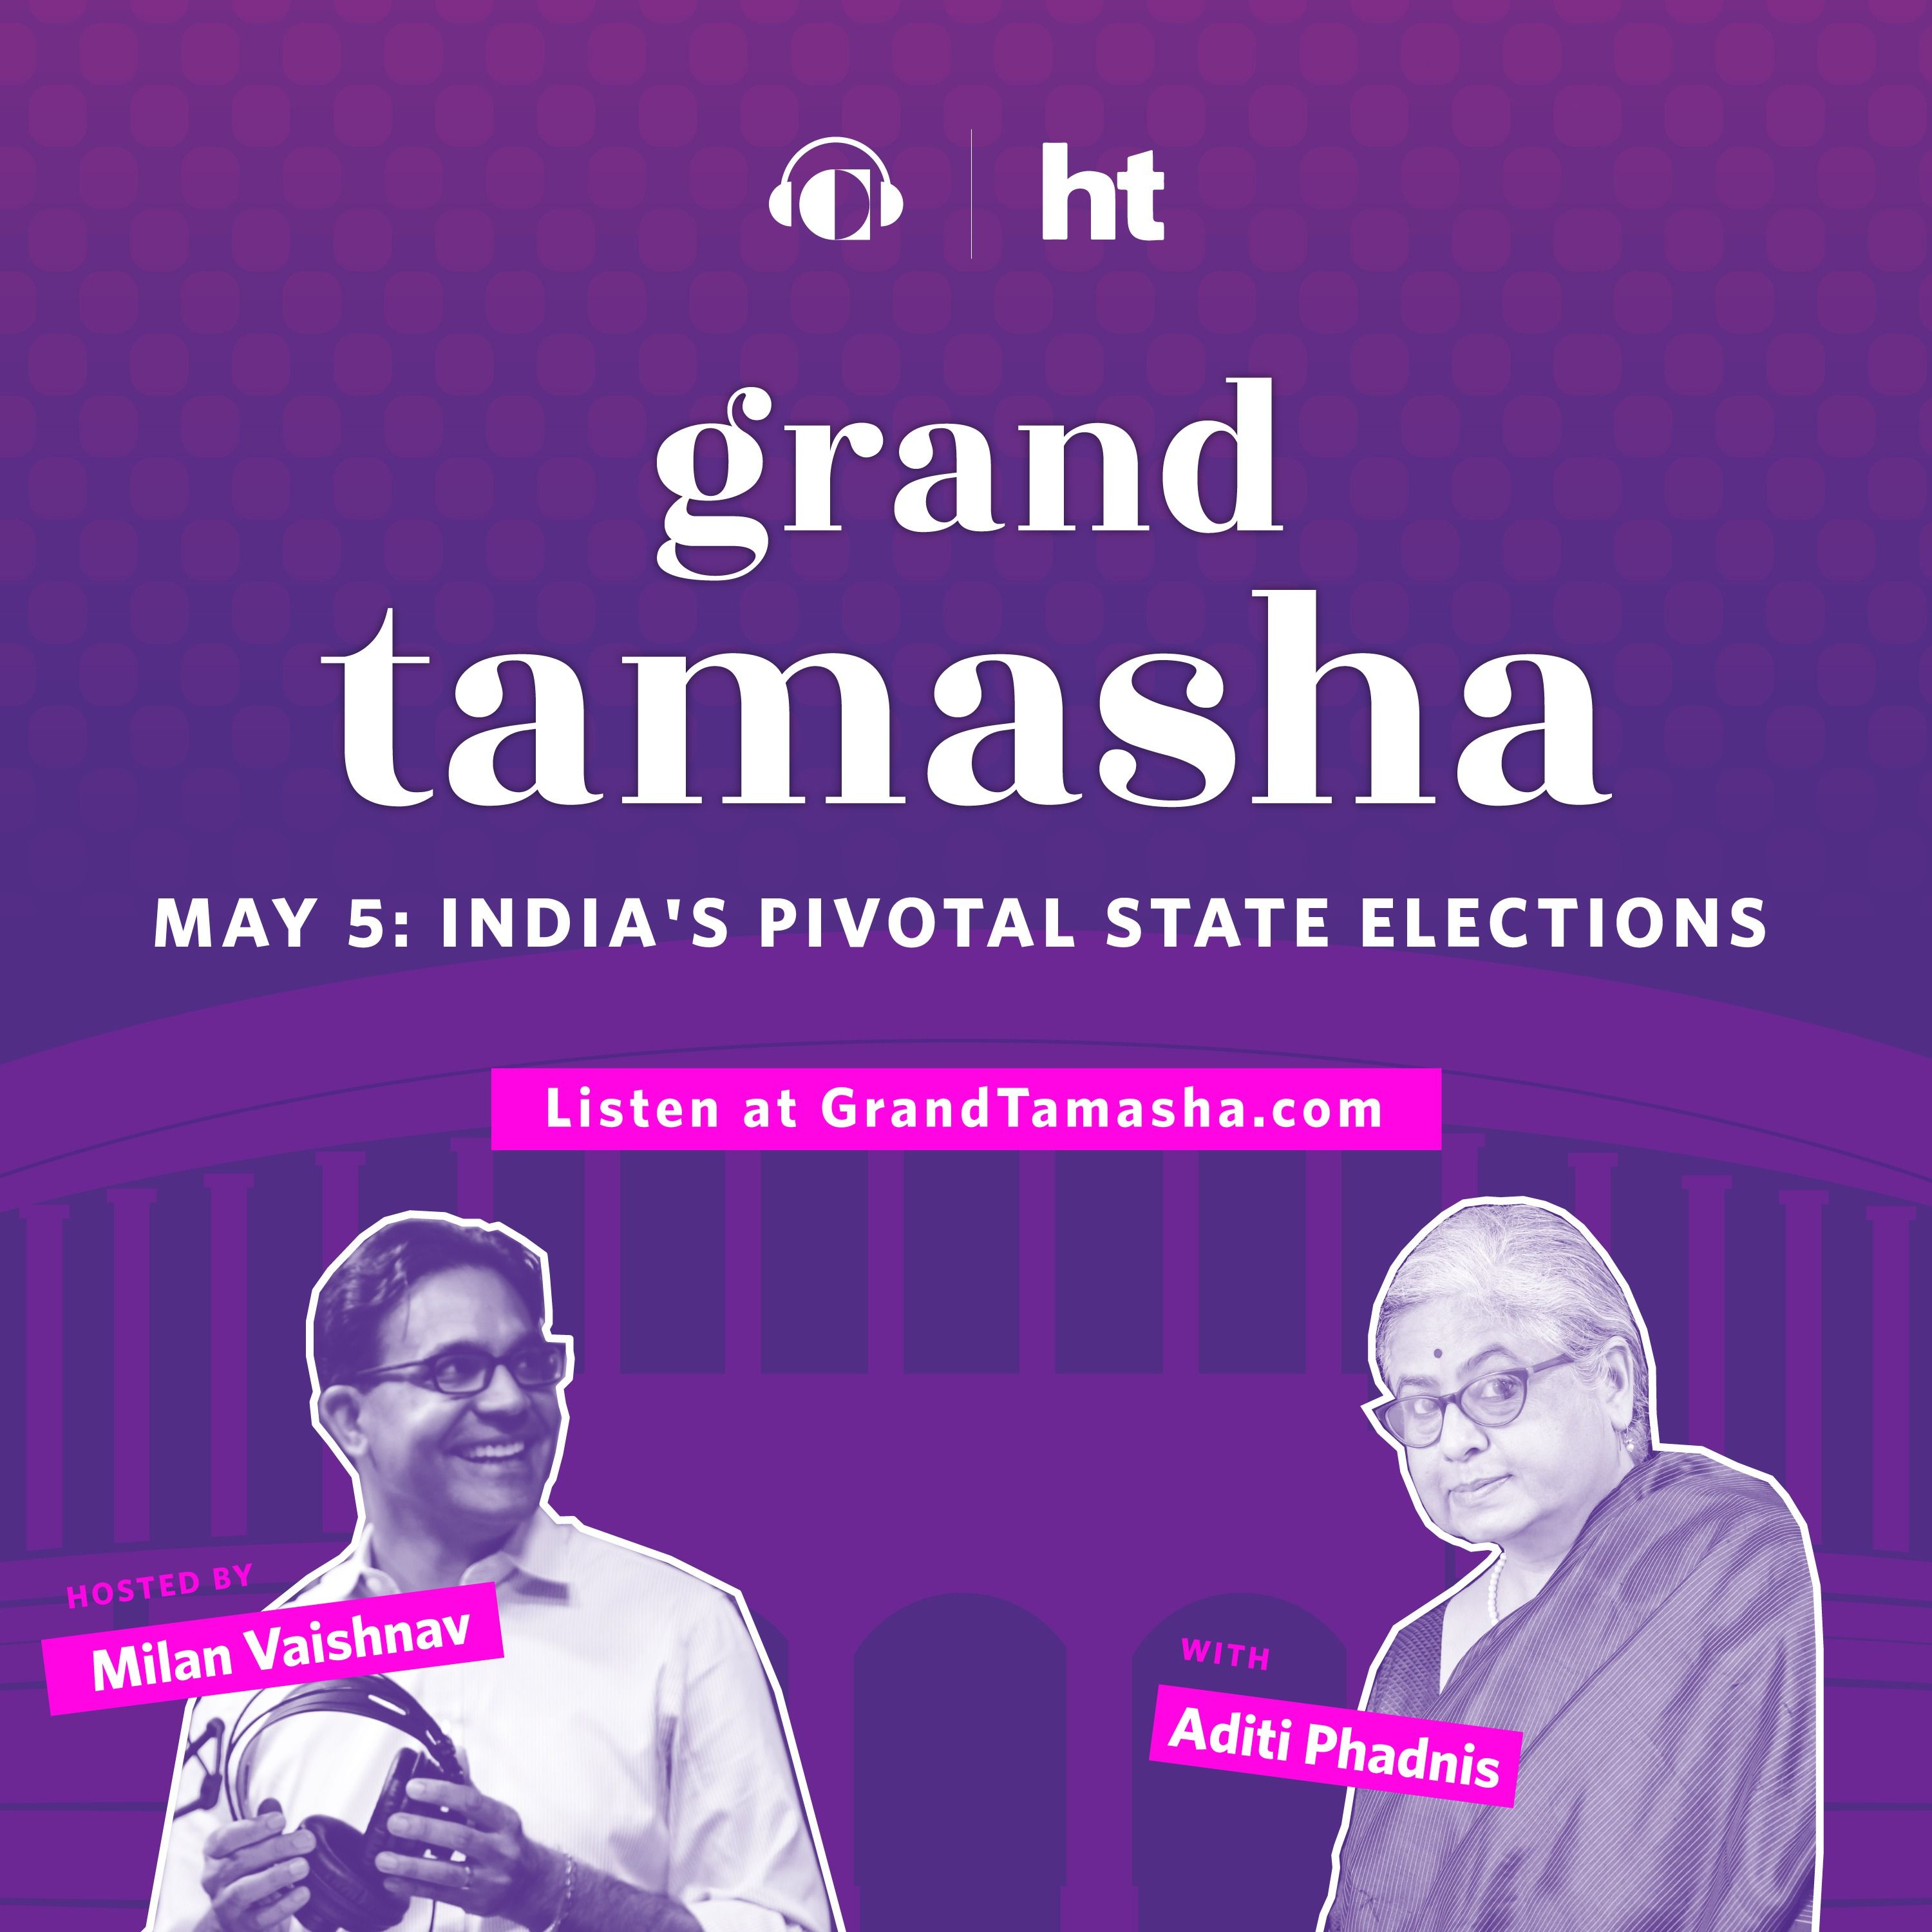 Aditi Phadnis on India's Pivotal State Elections